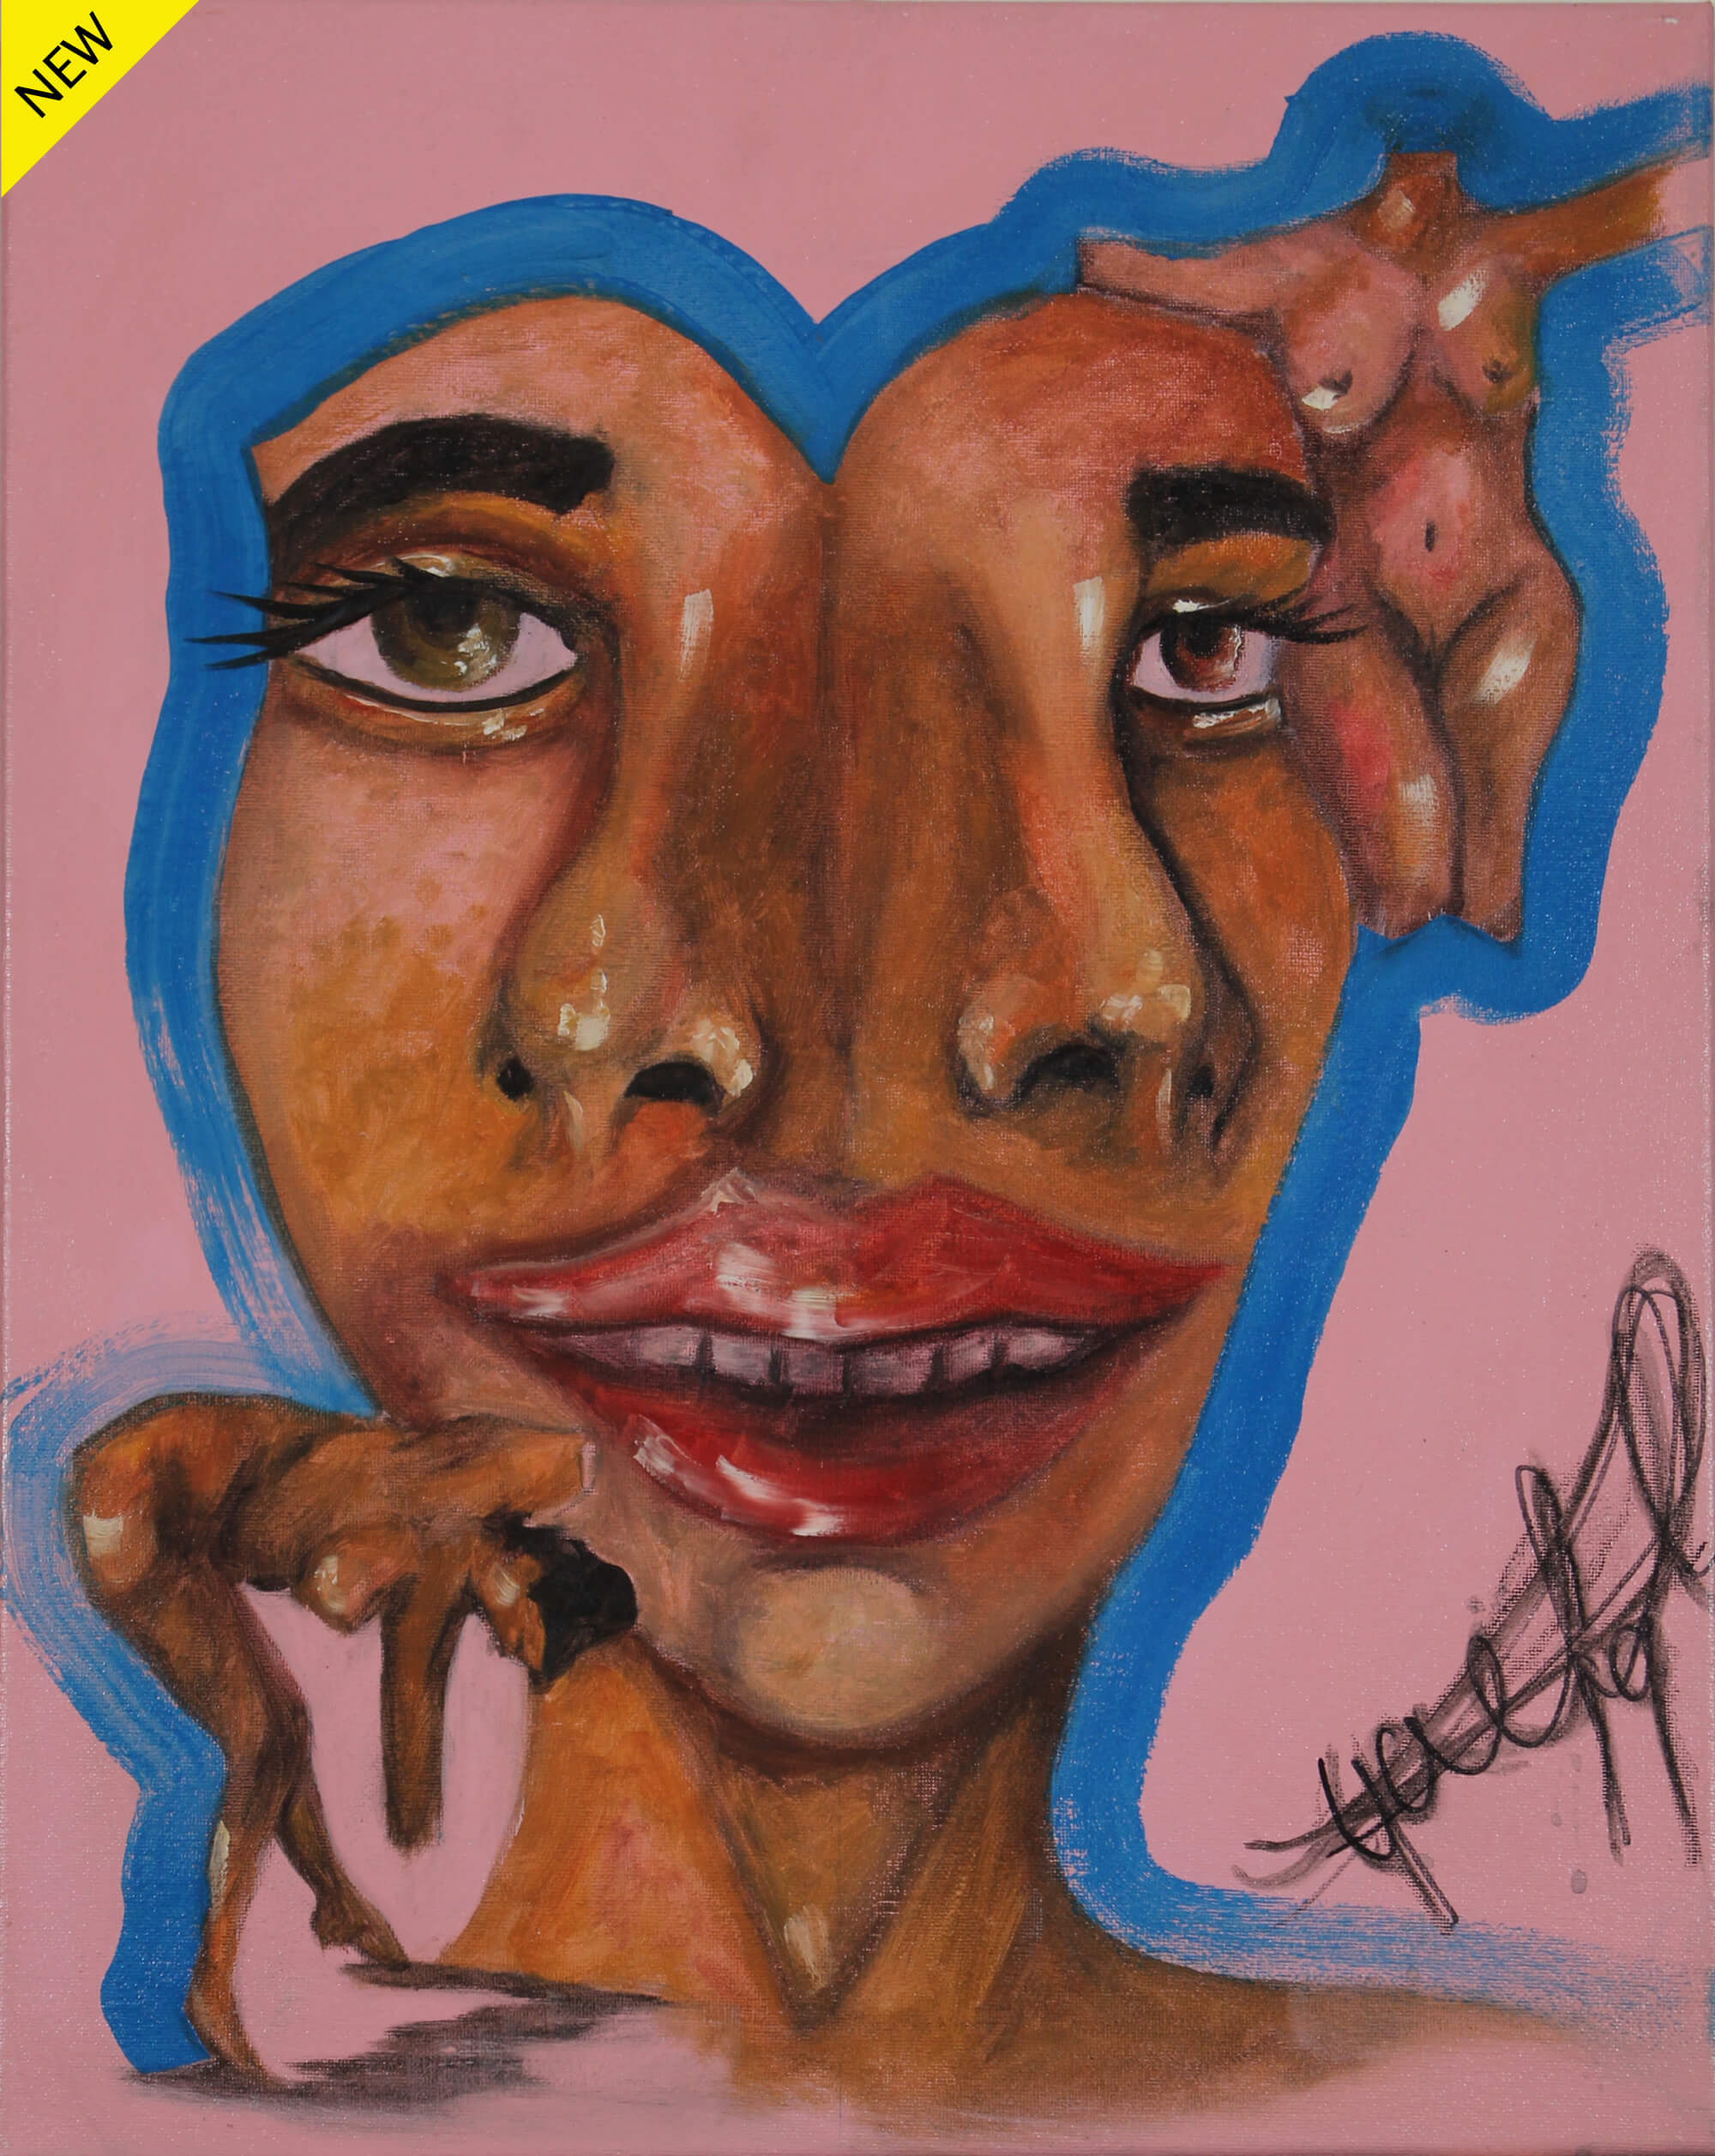 Acrylic painting of portrait of face conjoined twins with two noses and one mouth accompanied by two tiny naked females by Kyhan Yael.